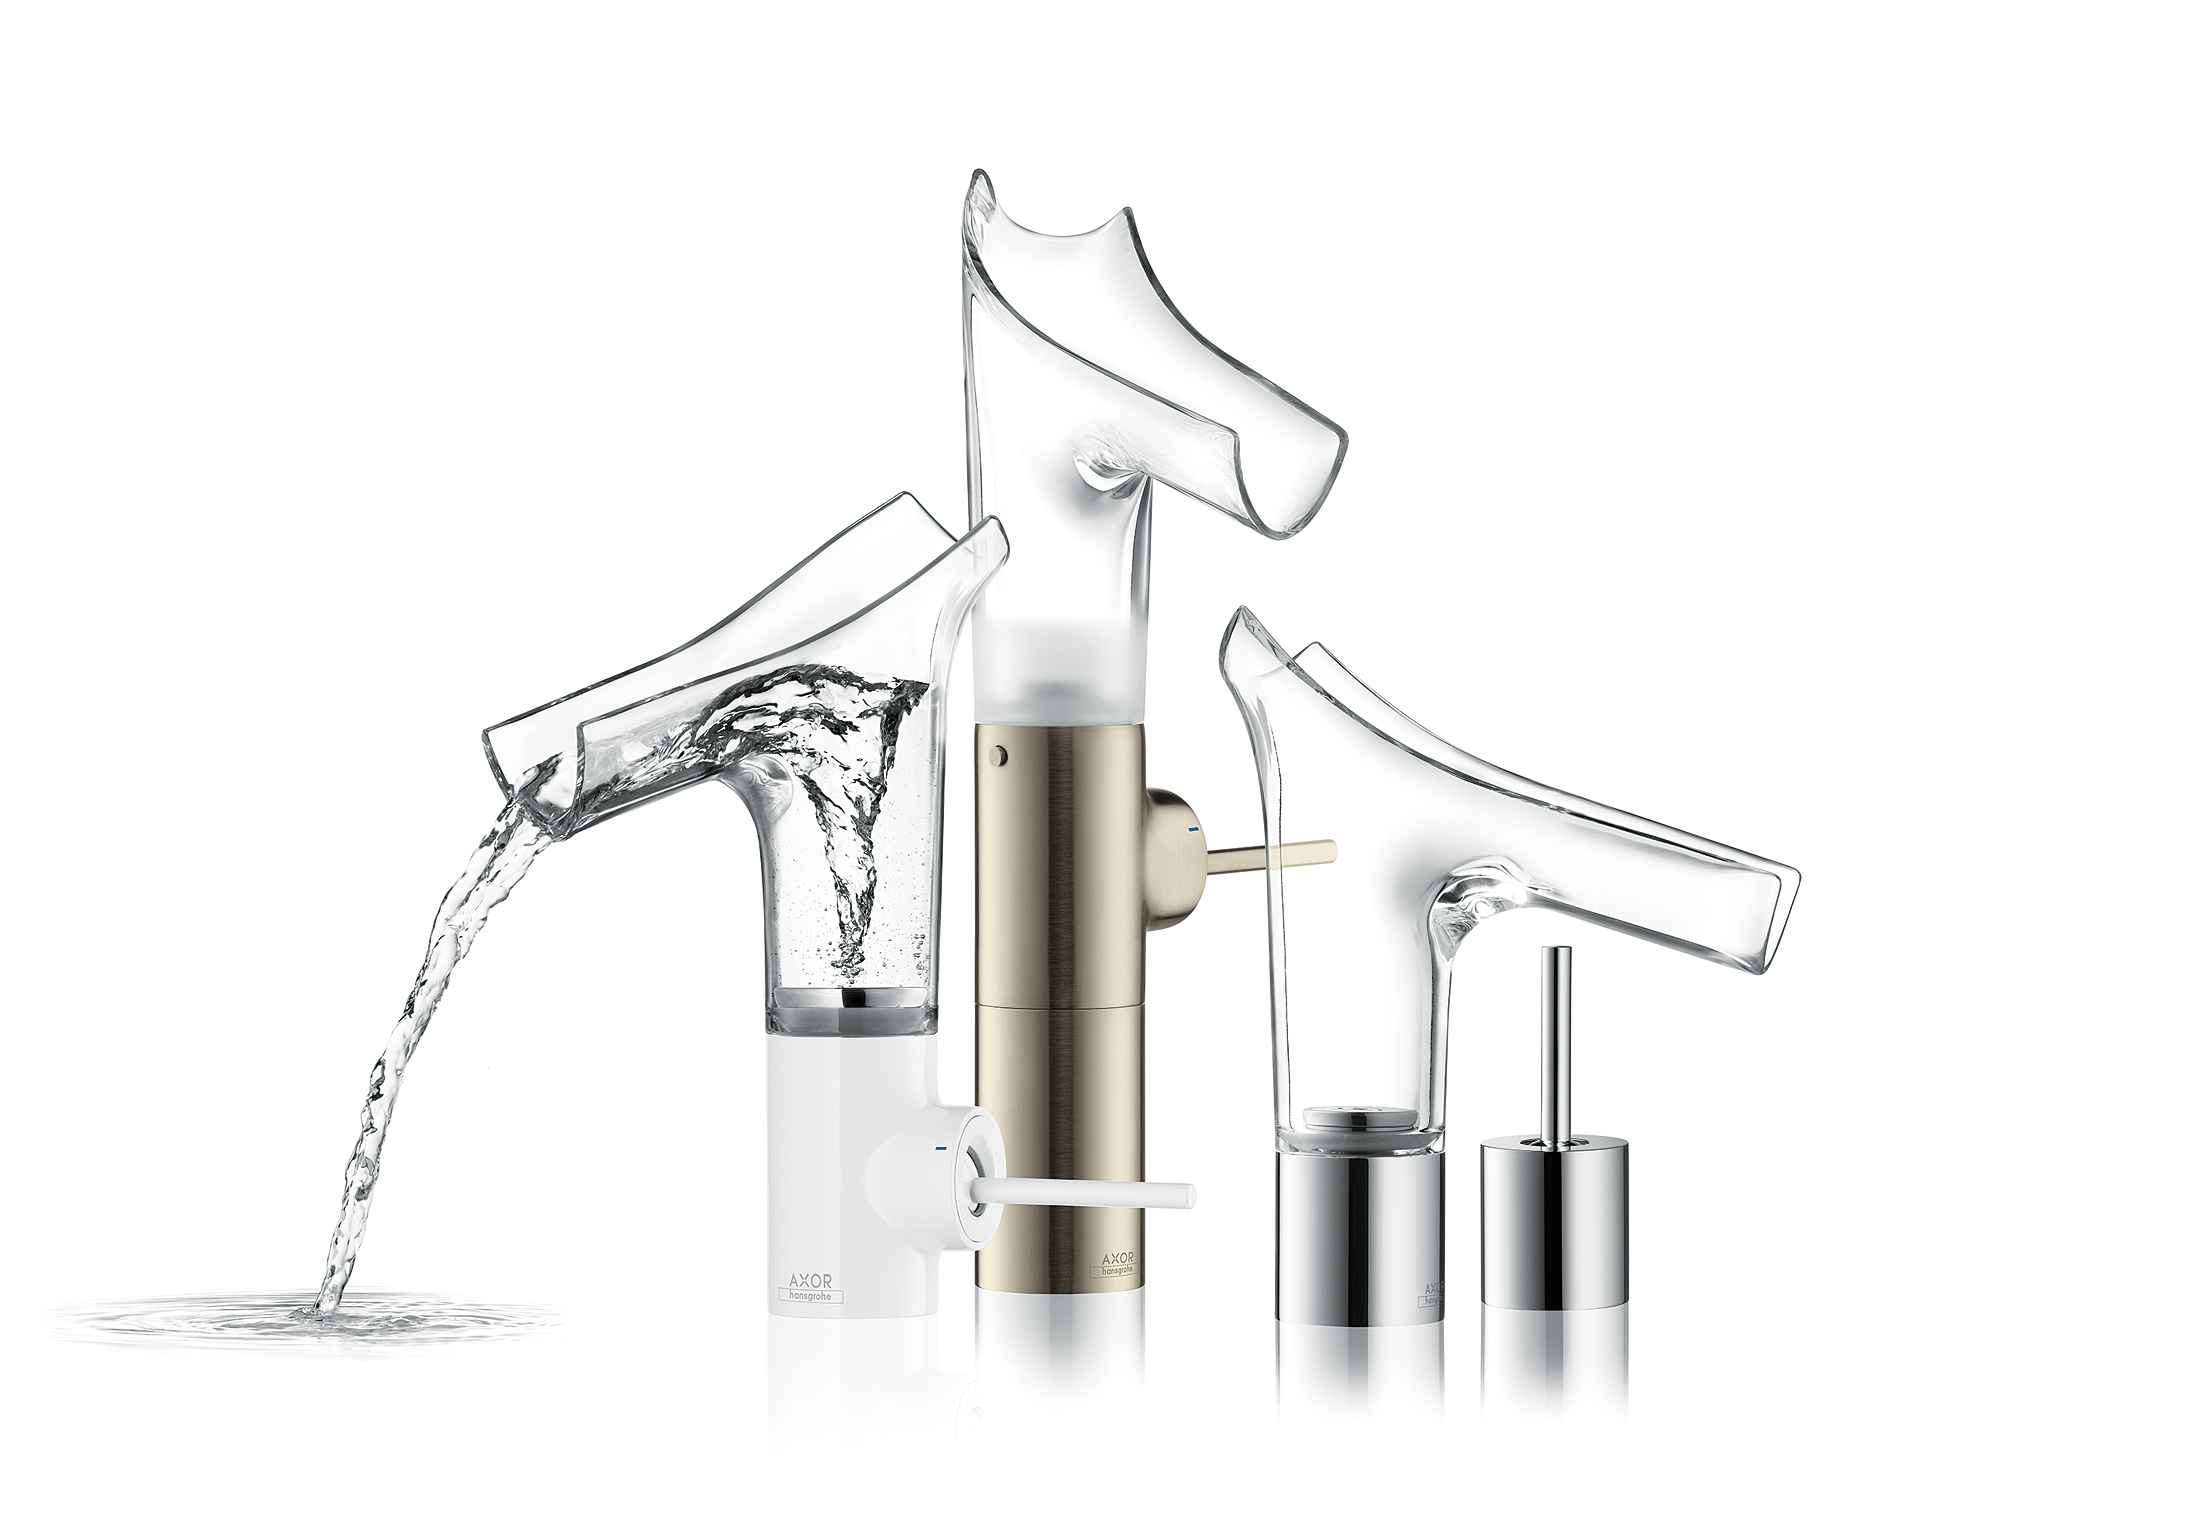 Axor Starck V; producent Hansgrohe; foto: http://www.hansgrohe.co.uk